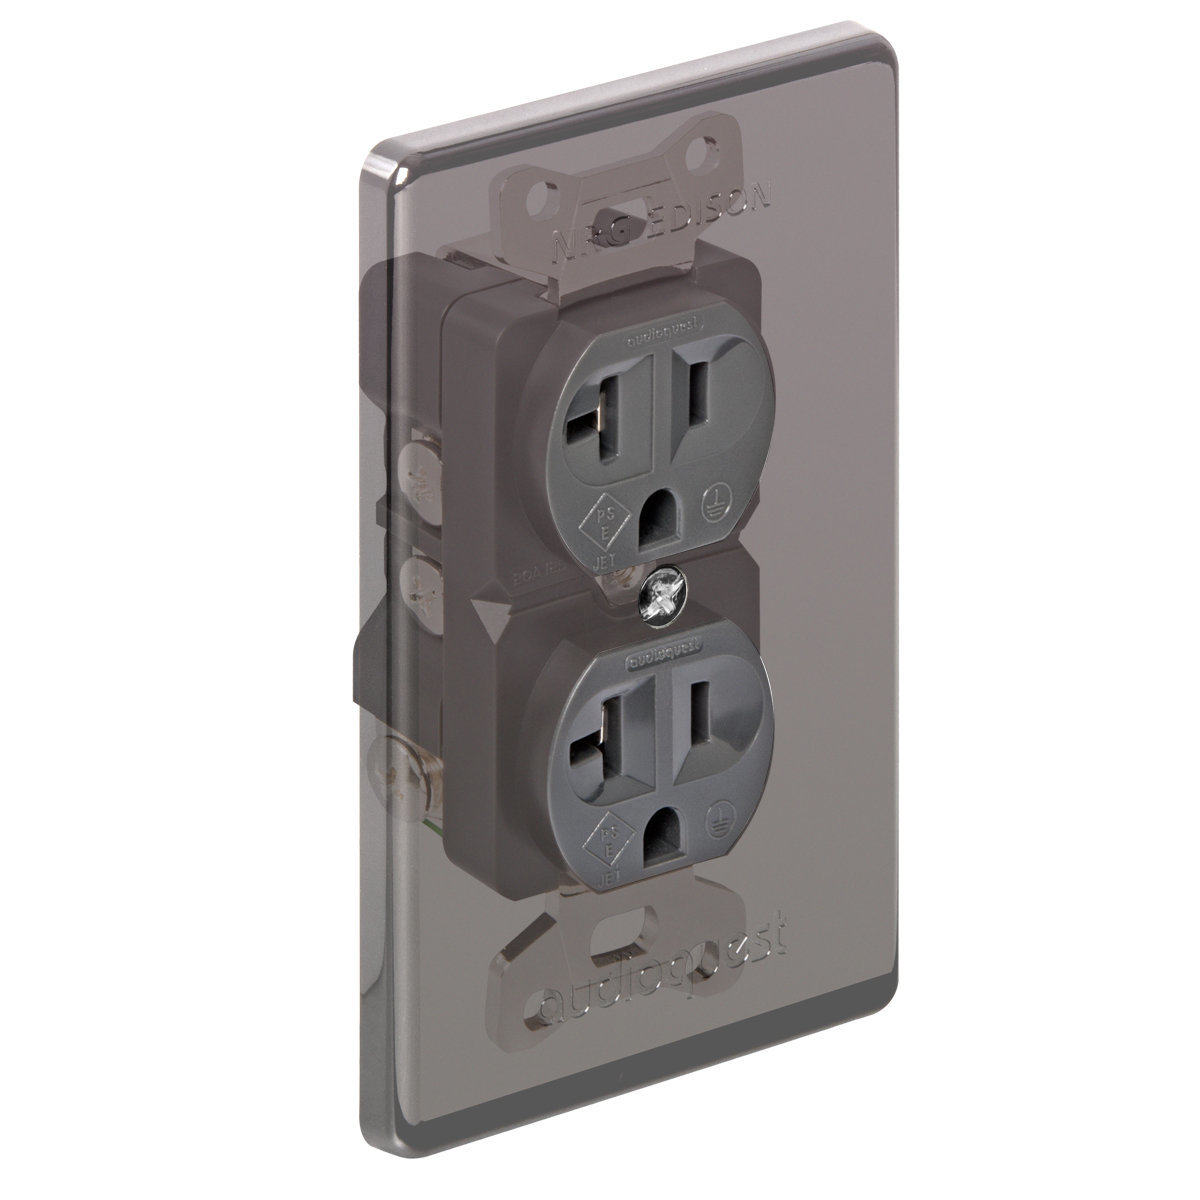 AudioQuest NRG Edison Duplex Wall Outlet - 20 Amp | World Wide Stereo